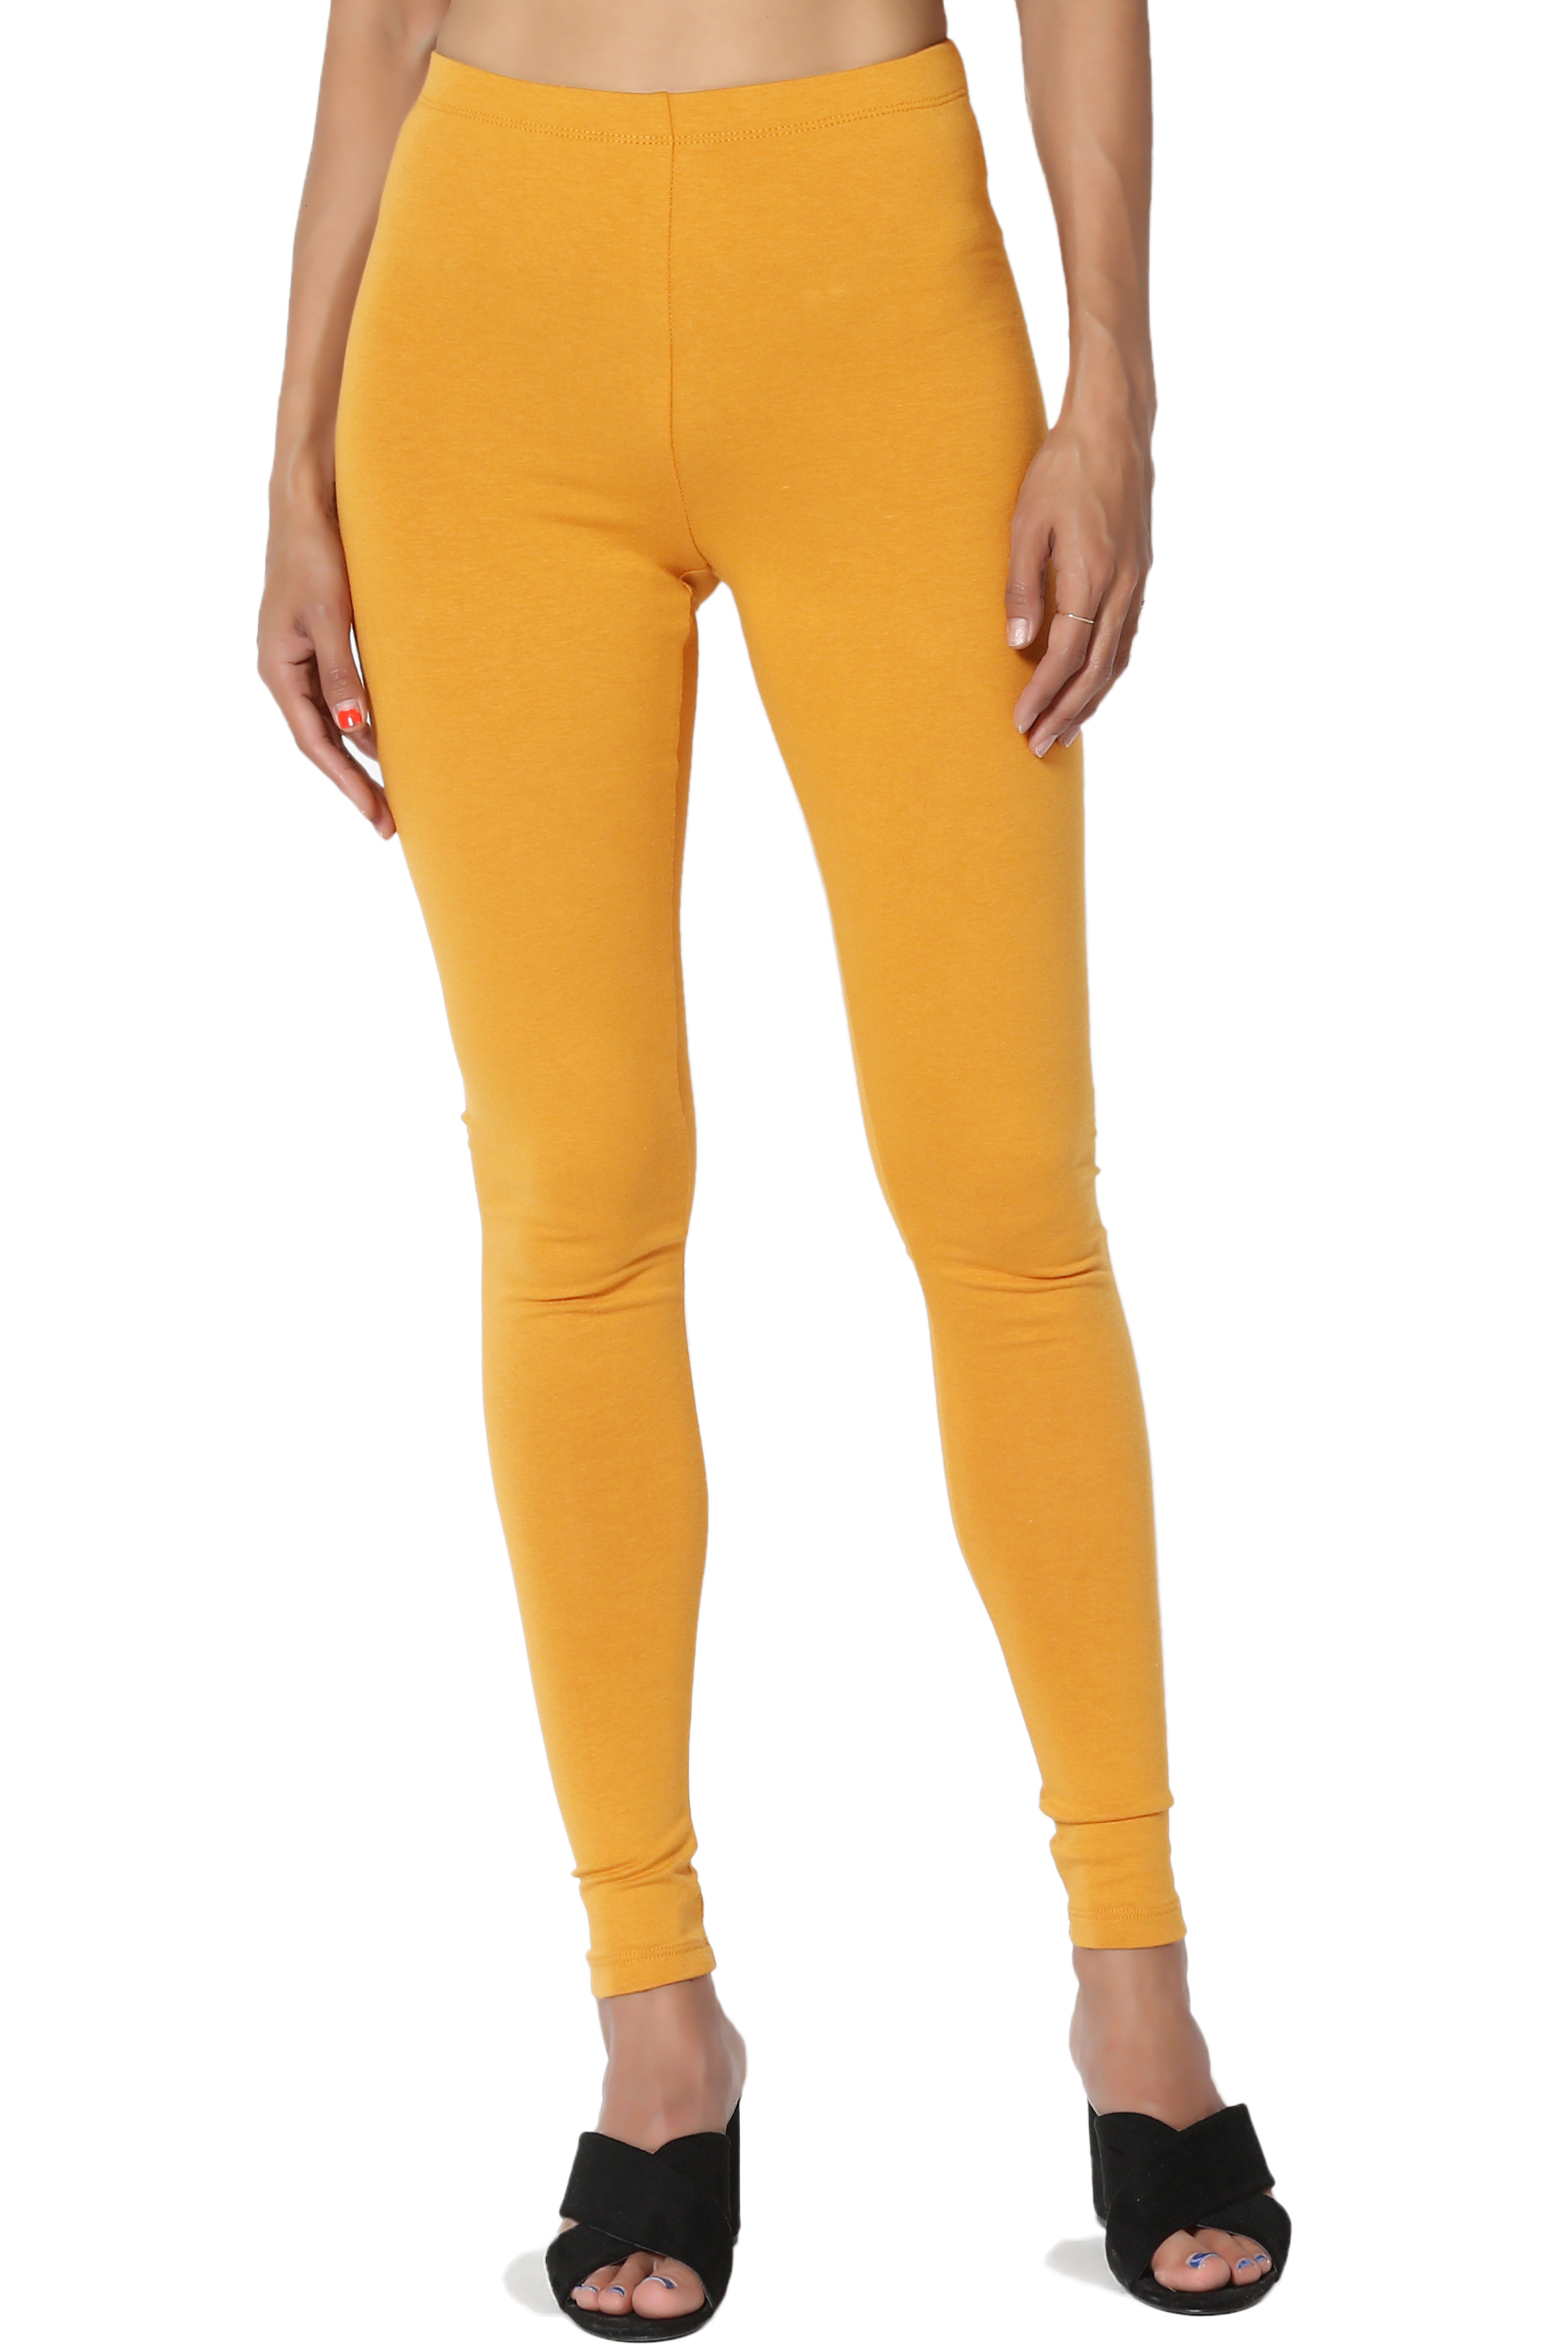 TheMogan Women's S~3X Cotton Jersey High Waist Long Full Length Ankle Leggings